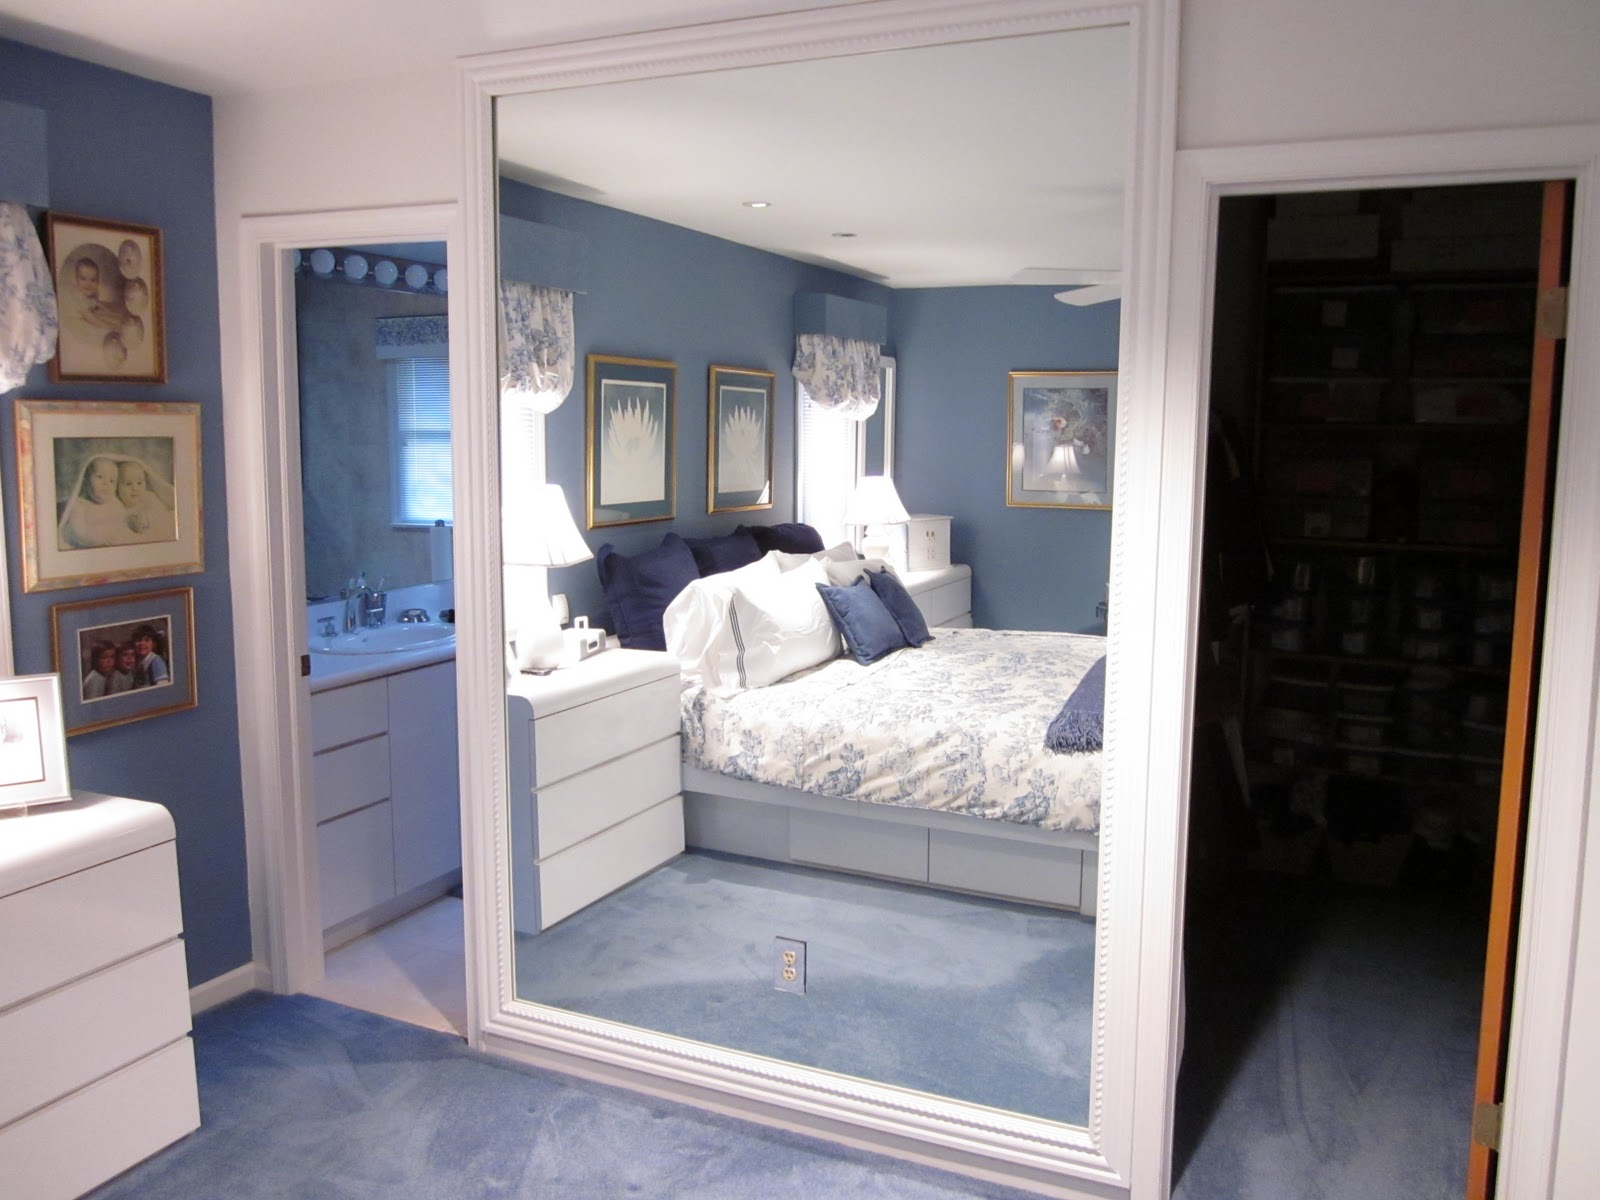 Frame a bathroom mirror with molding - Framing A Large Mirror